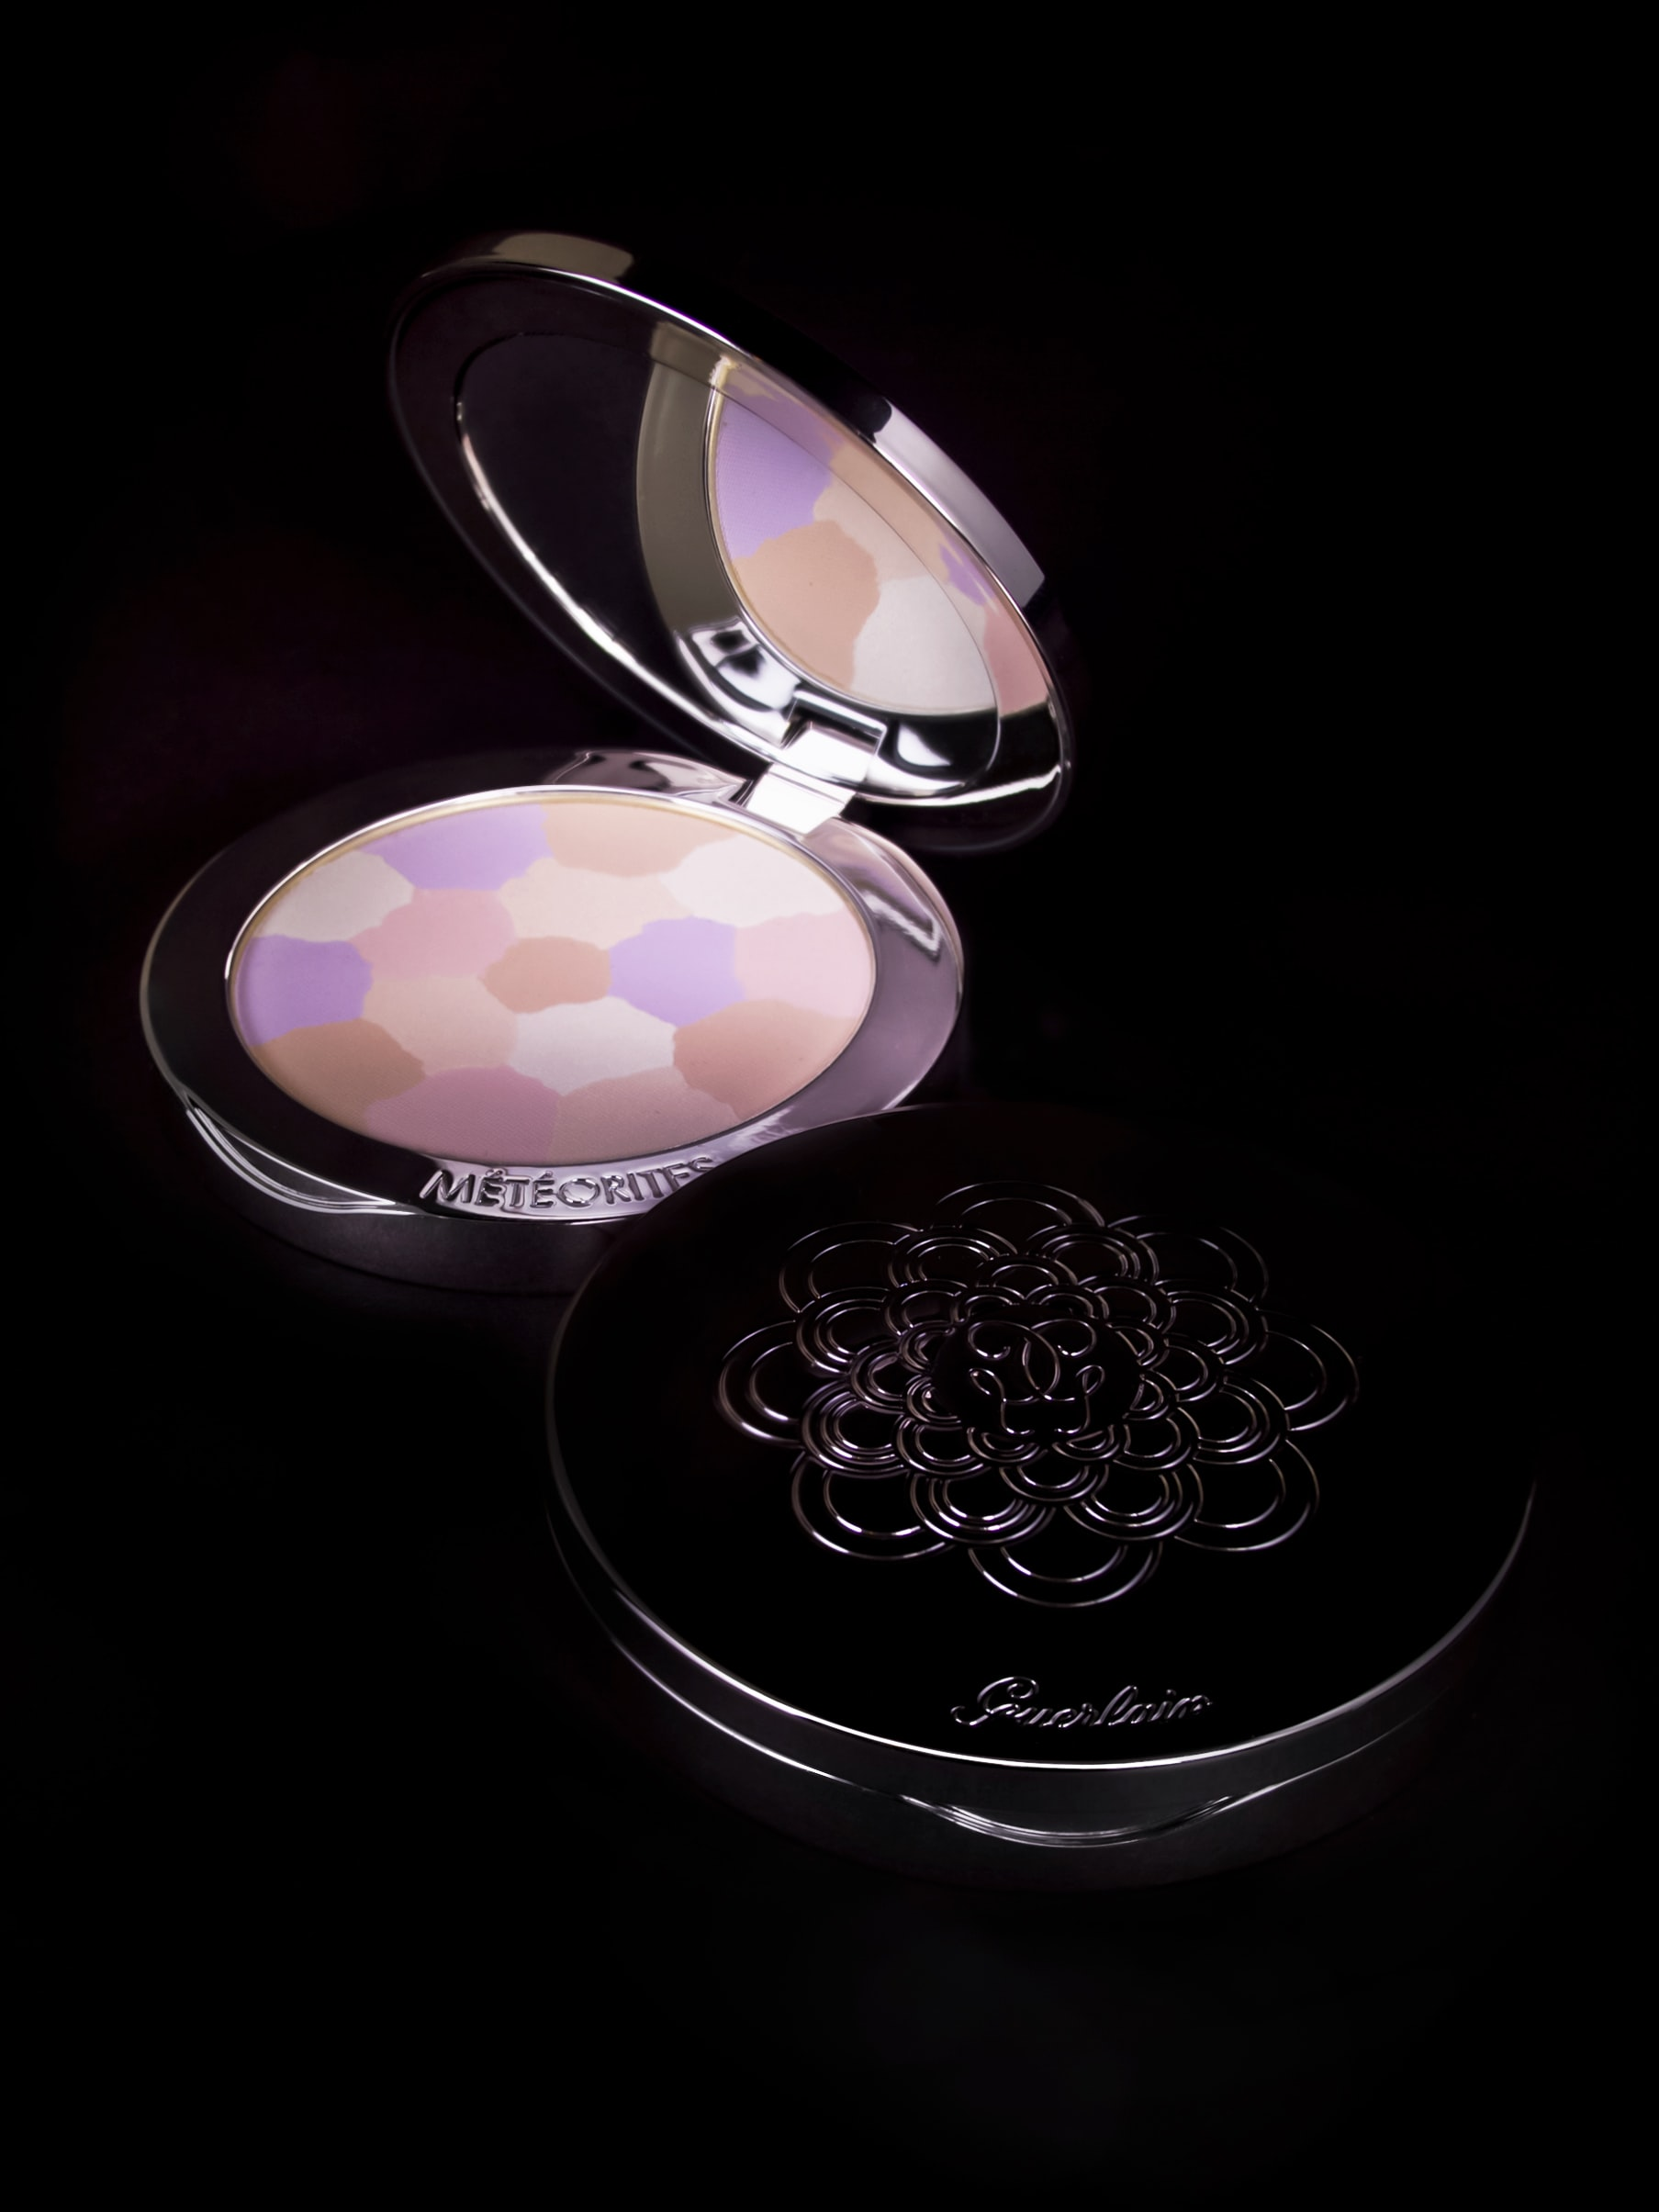 Two compact powder cases are placed against a dark background.